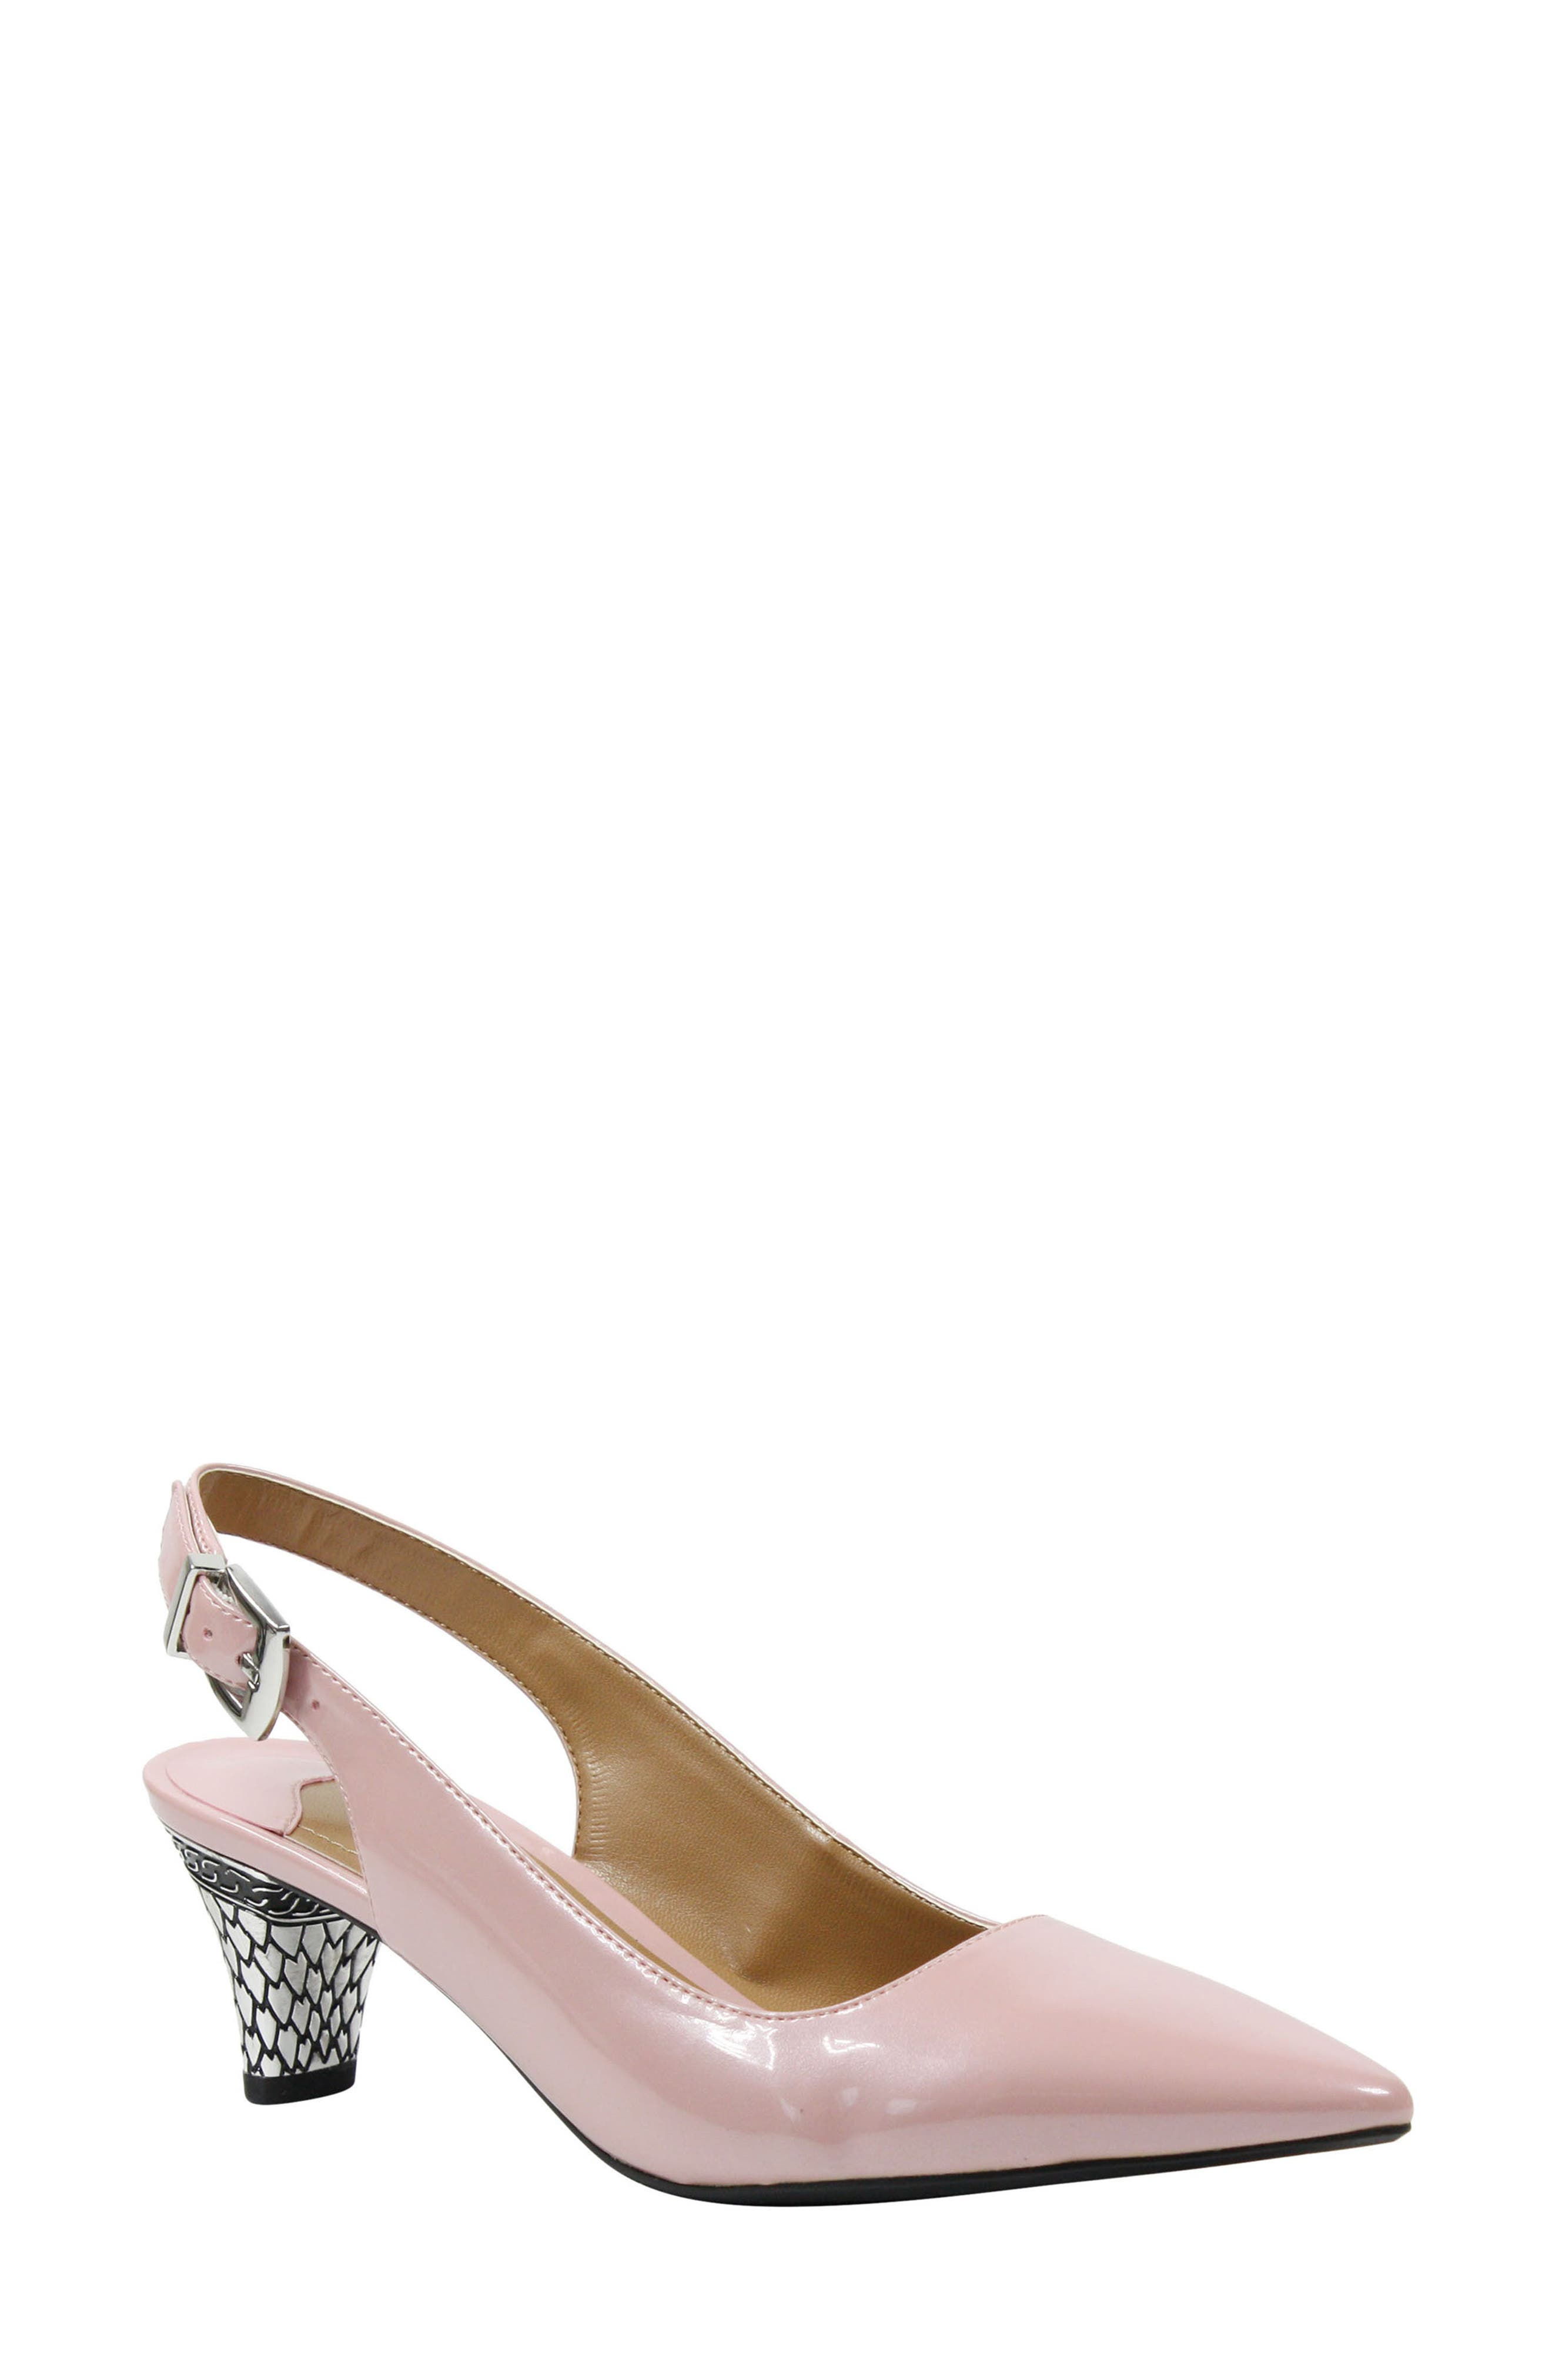 Women's Pink Kitten Heel Pumps | Nordstrom